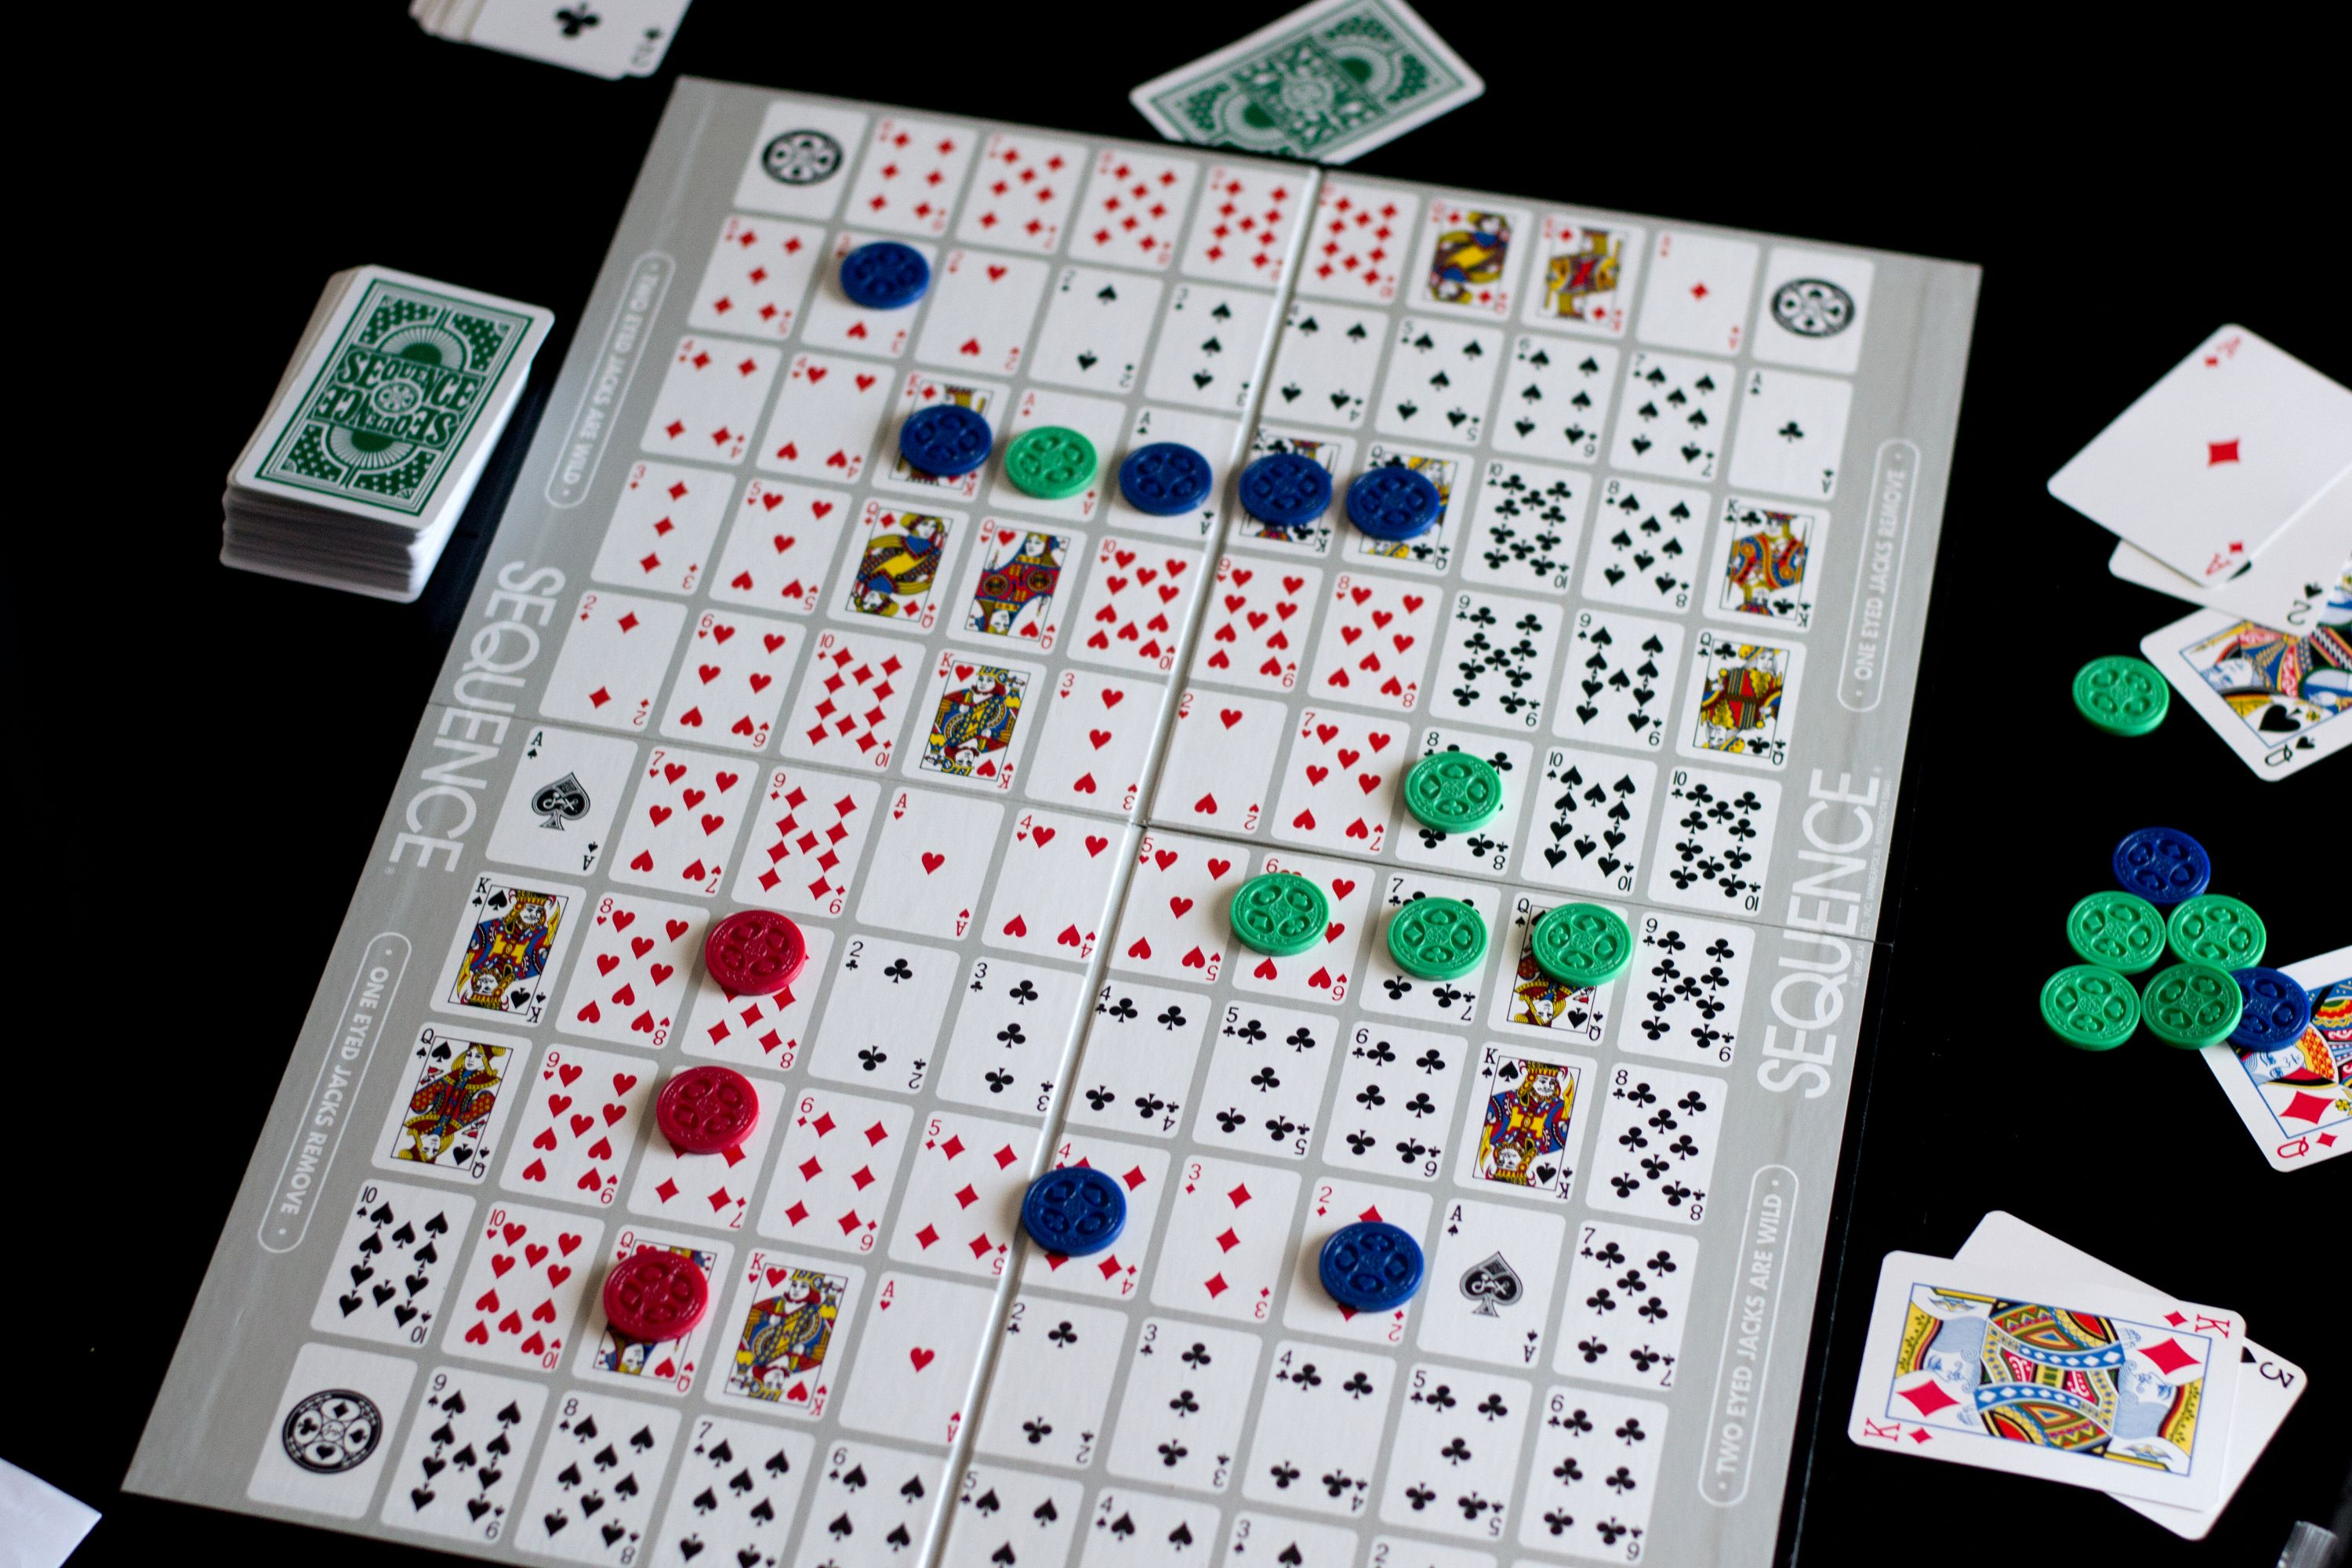 Sequence Card Game Rules Card games, Sequence game, Games